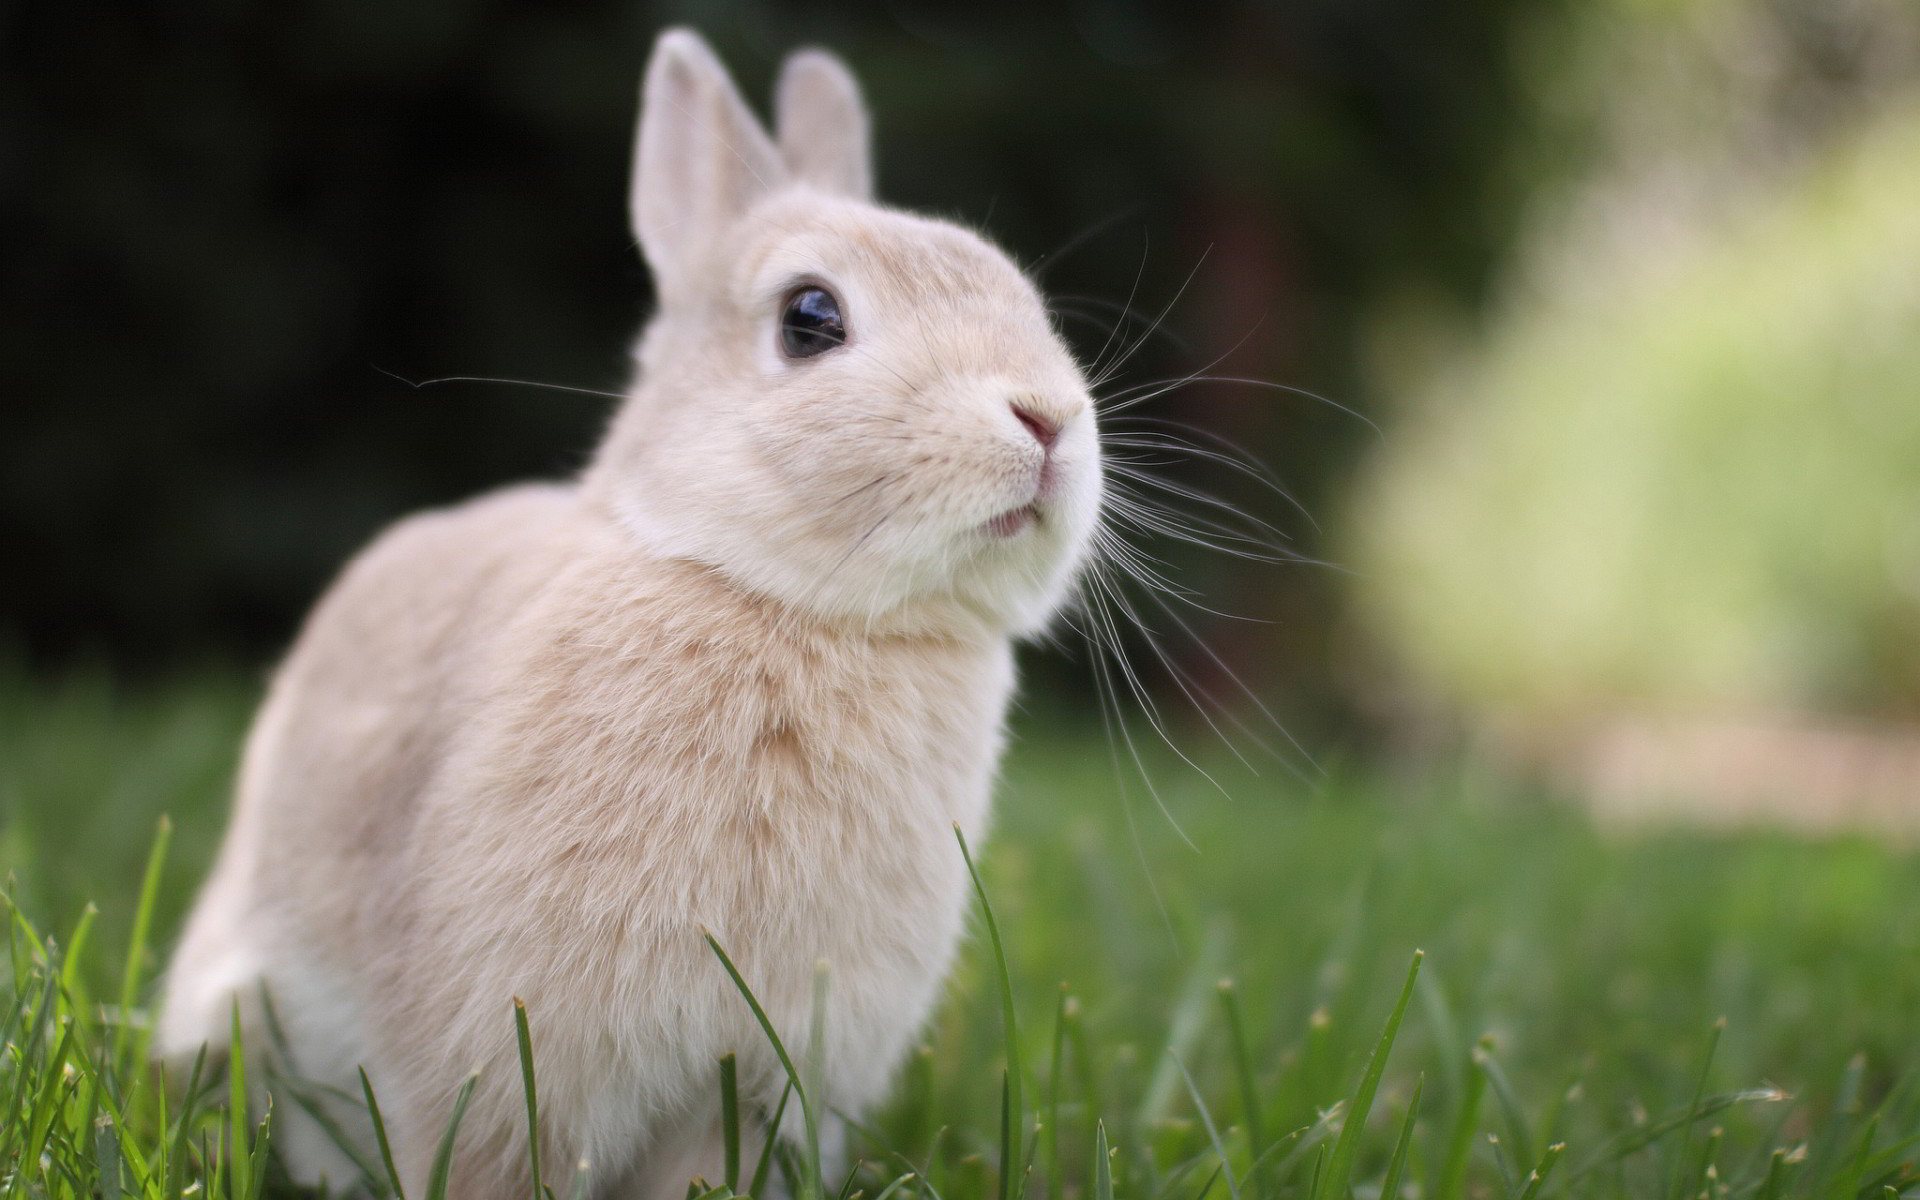 Animals Wallpaper: Cute Bunny Wallpapers Free with HD Desktop